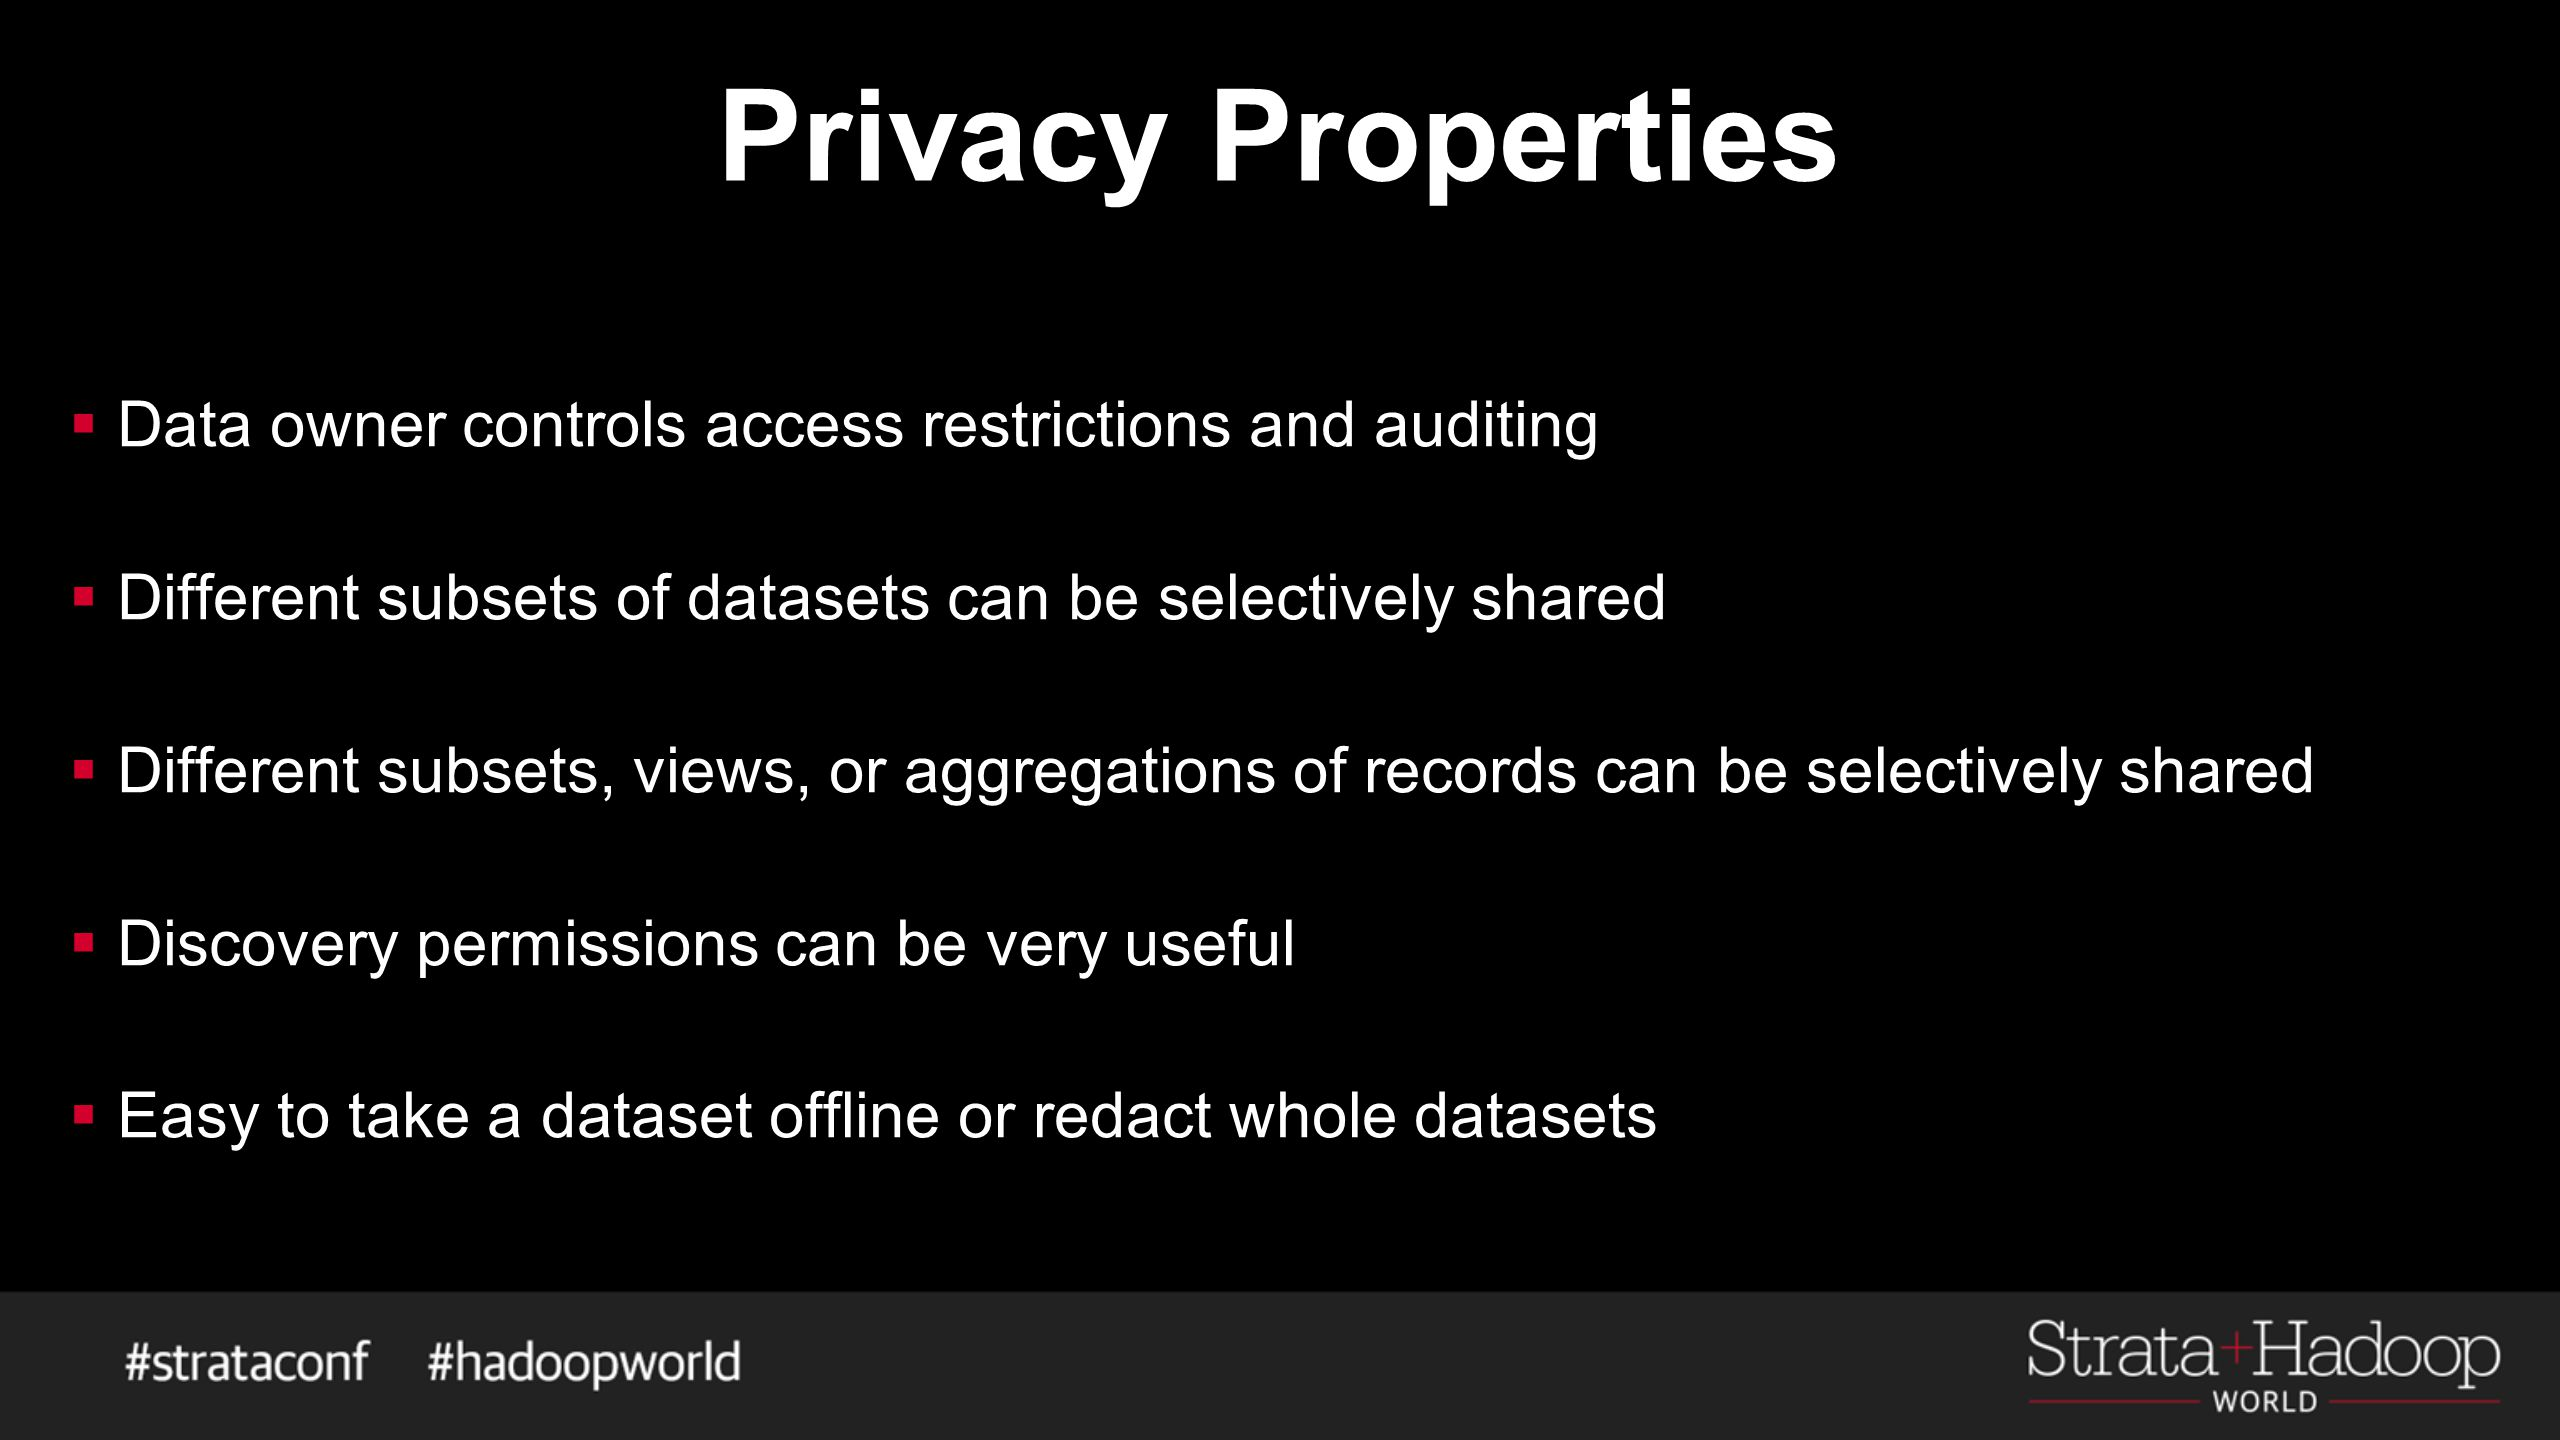 Privacy Properties  Data owner controls access restrictions and auditing  Different subsets of datasets can be selectively shared  Different subsets, views, or aggregations of records can be selectively shared  Discovery permissions can be very useful  Easy to take a dataset offline or redact whole datasets